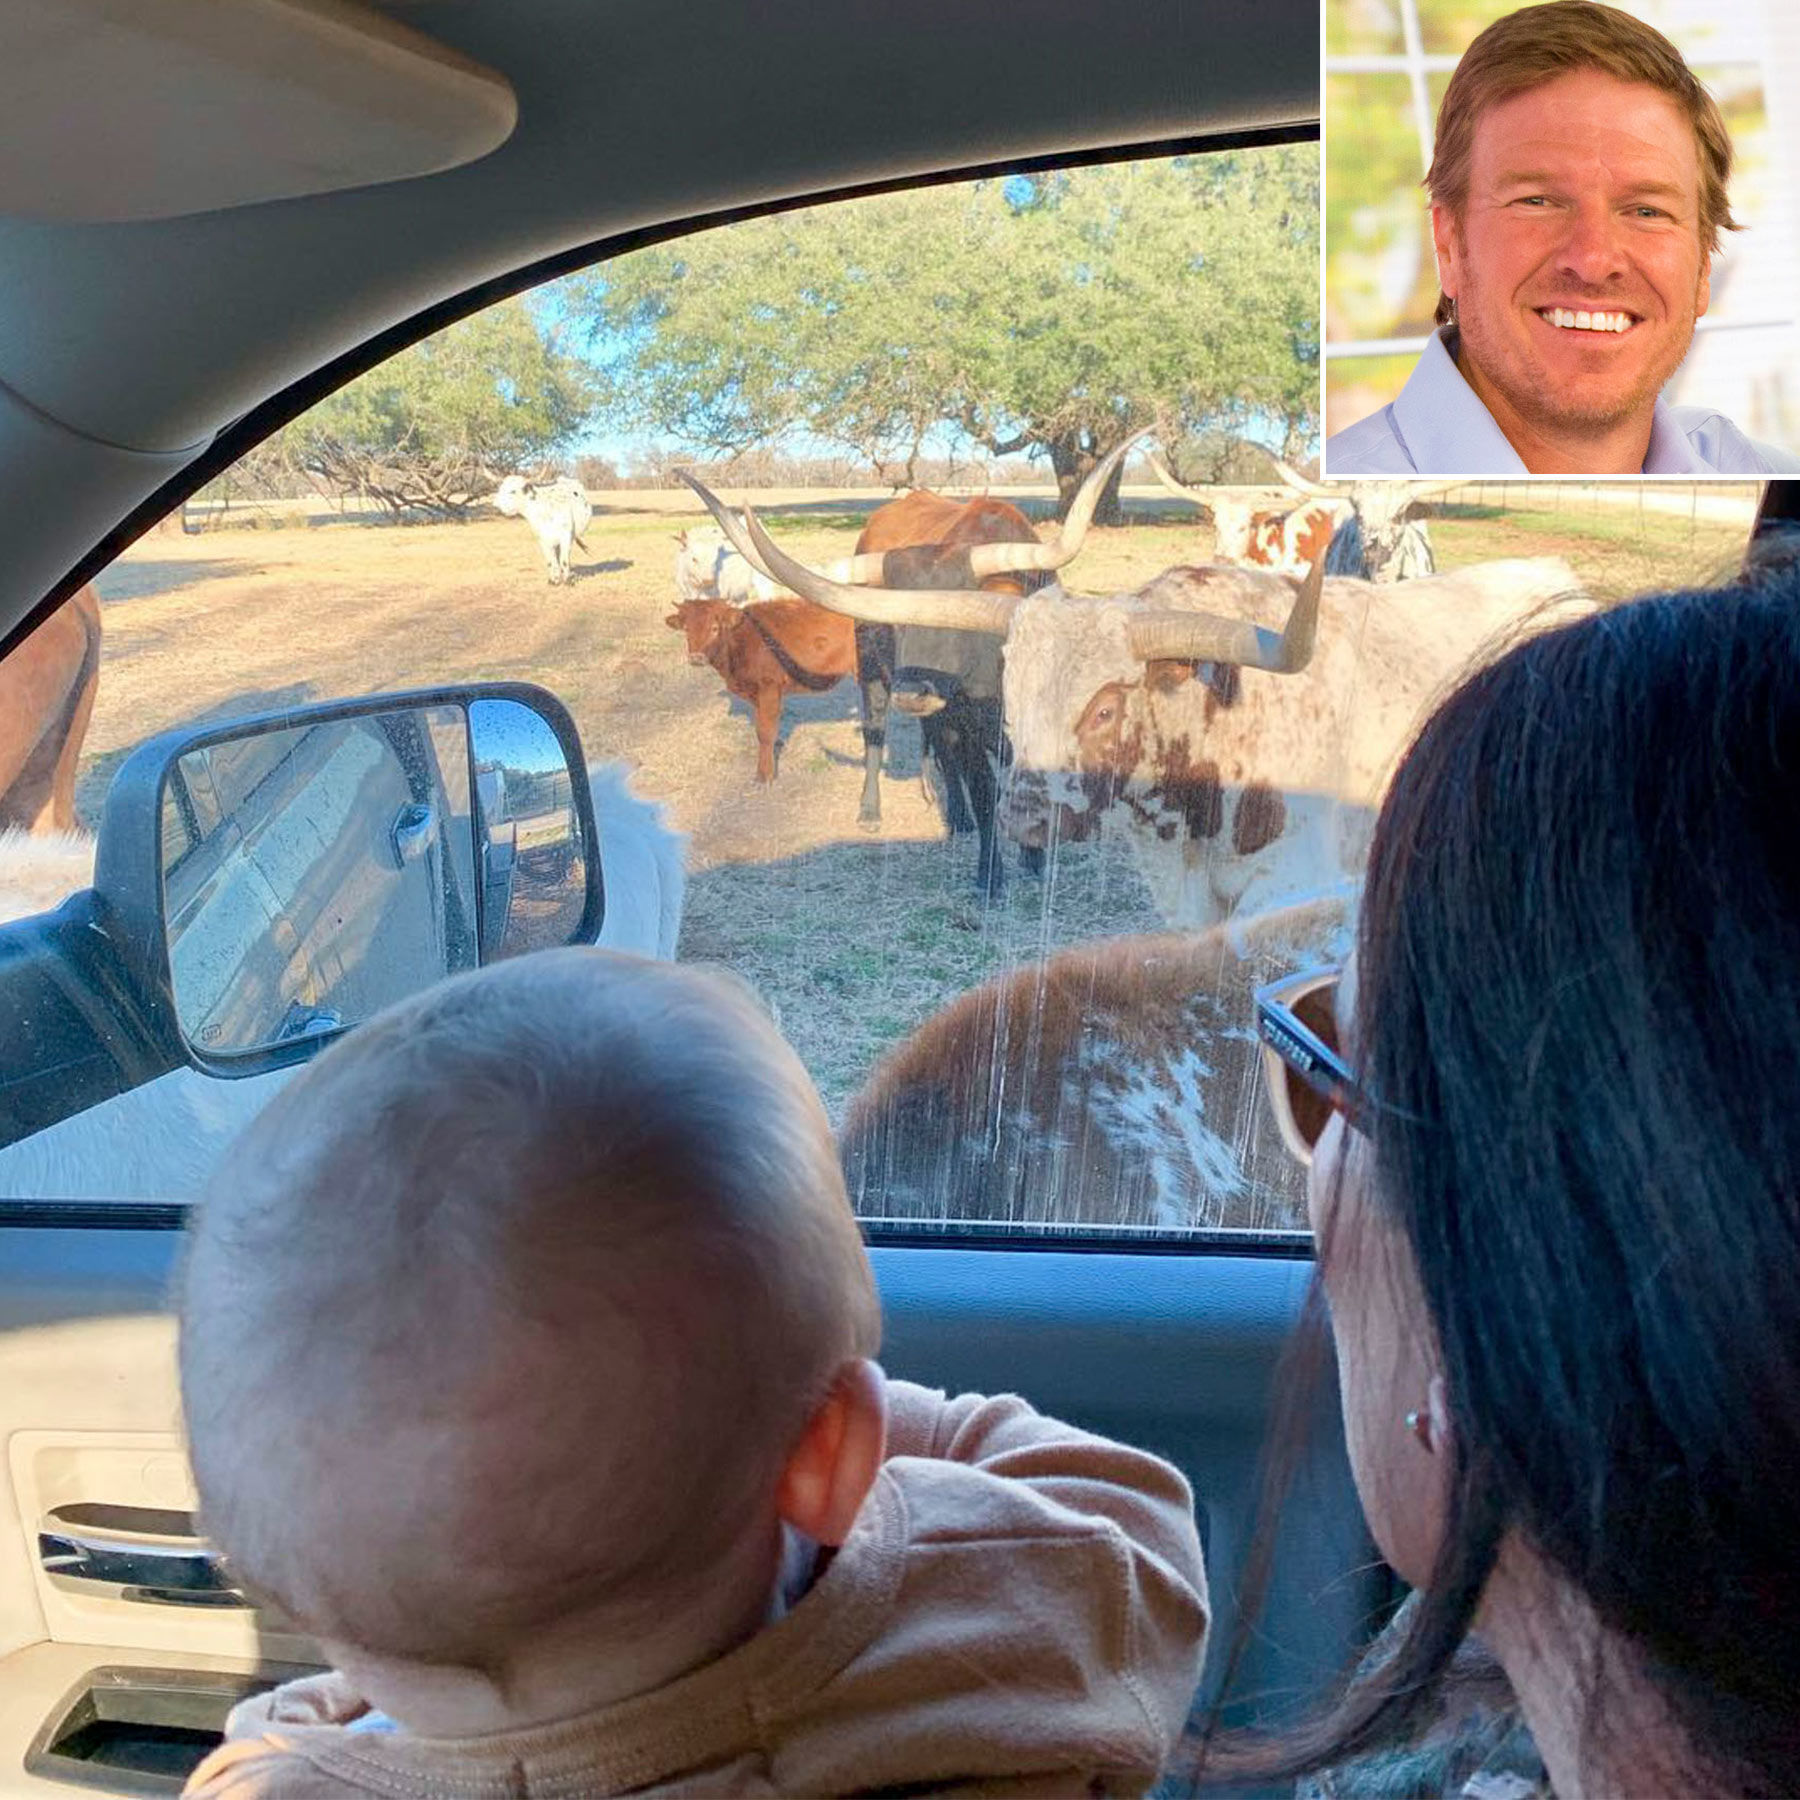 'Farm Life!' Chip and Joanna Gaines' Son Crew, 7 Months, Gets Acquainted with Longhorns